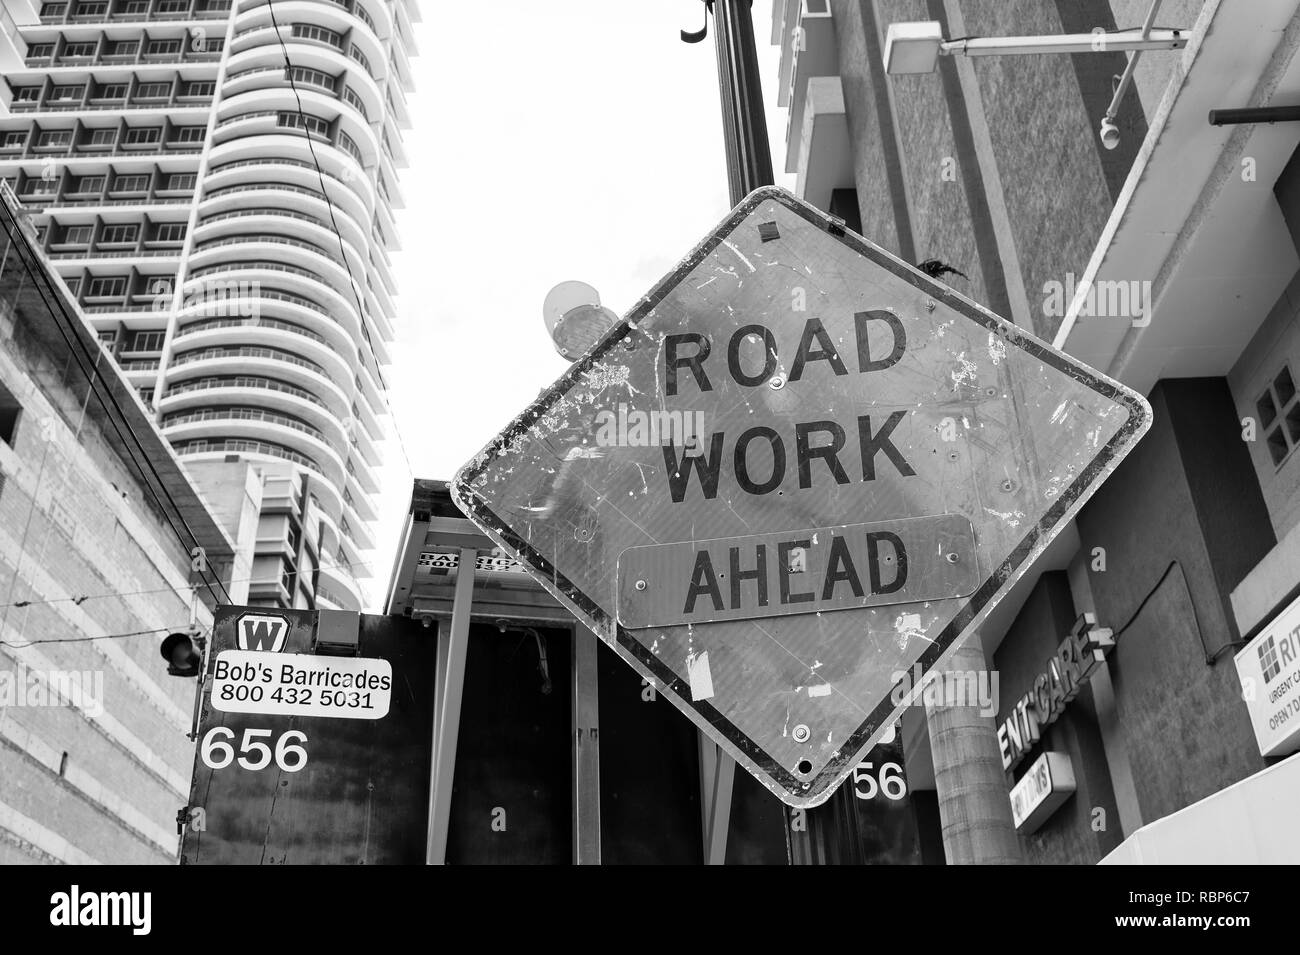 Miami, USA - October 30, 2015: construction sign on city road. Road work ahead warning and safety. Transportation traffic and travel. Caution and warn concept. - Stock Image